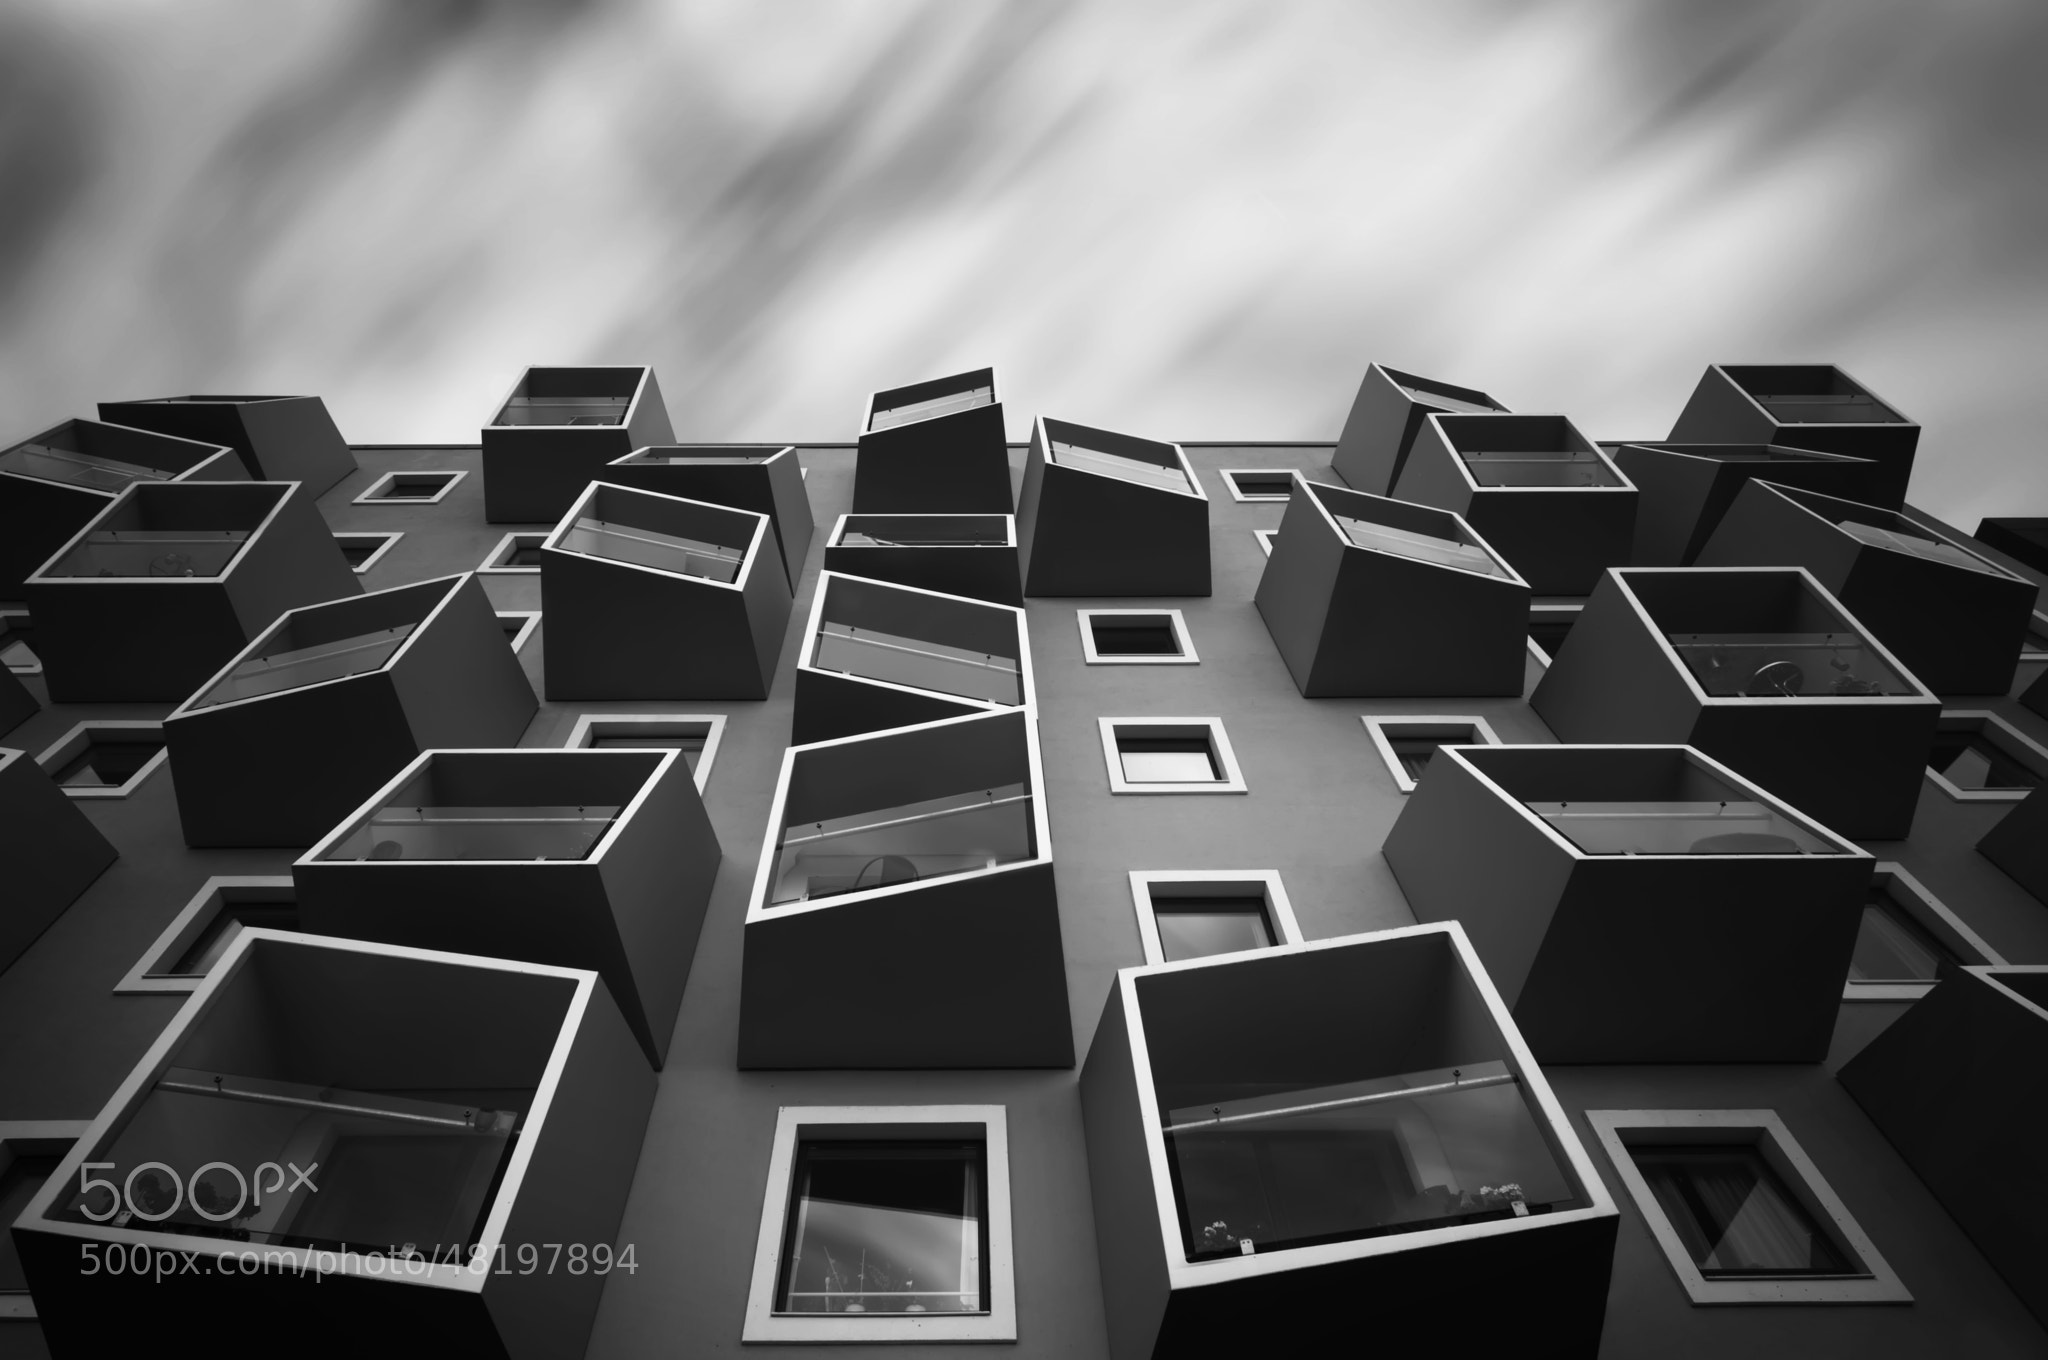 Photograph Ordered Chaos II by Luis Fernandez on 500px